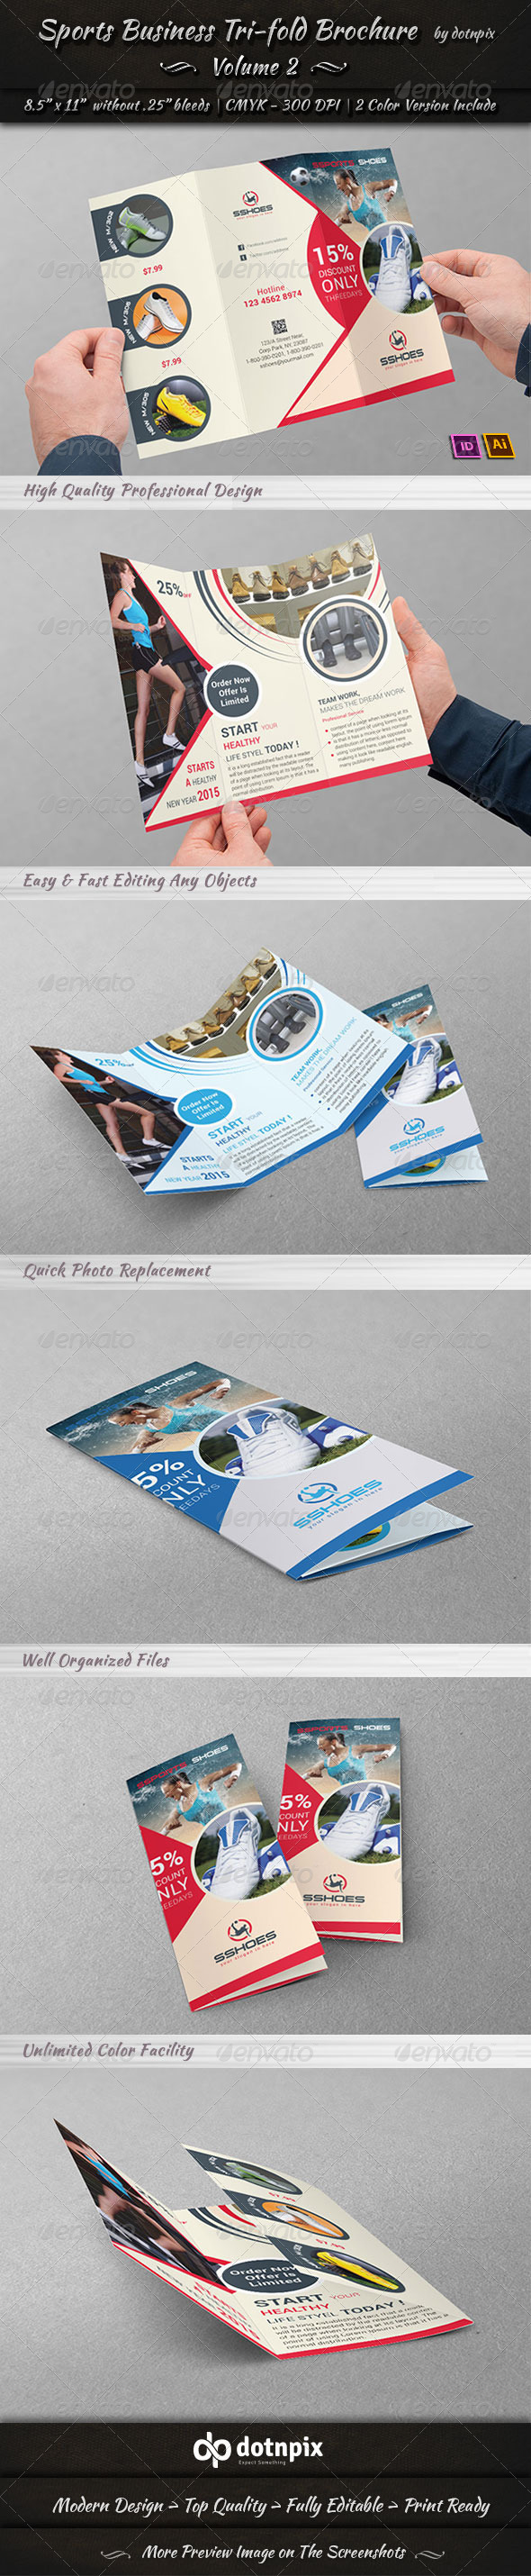 GraphicRiver Sports Business TriFold Brochure Volume 2 6787680